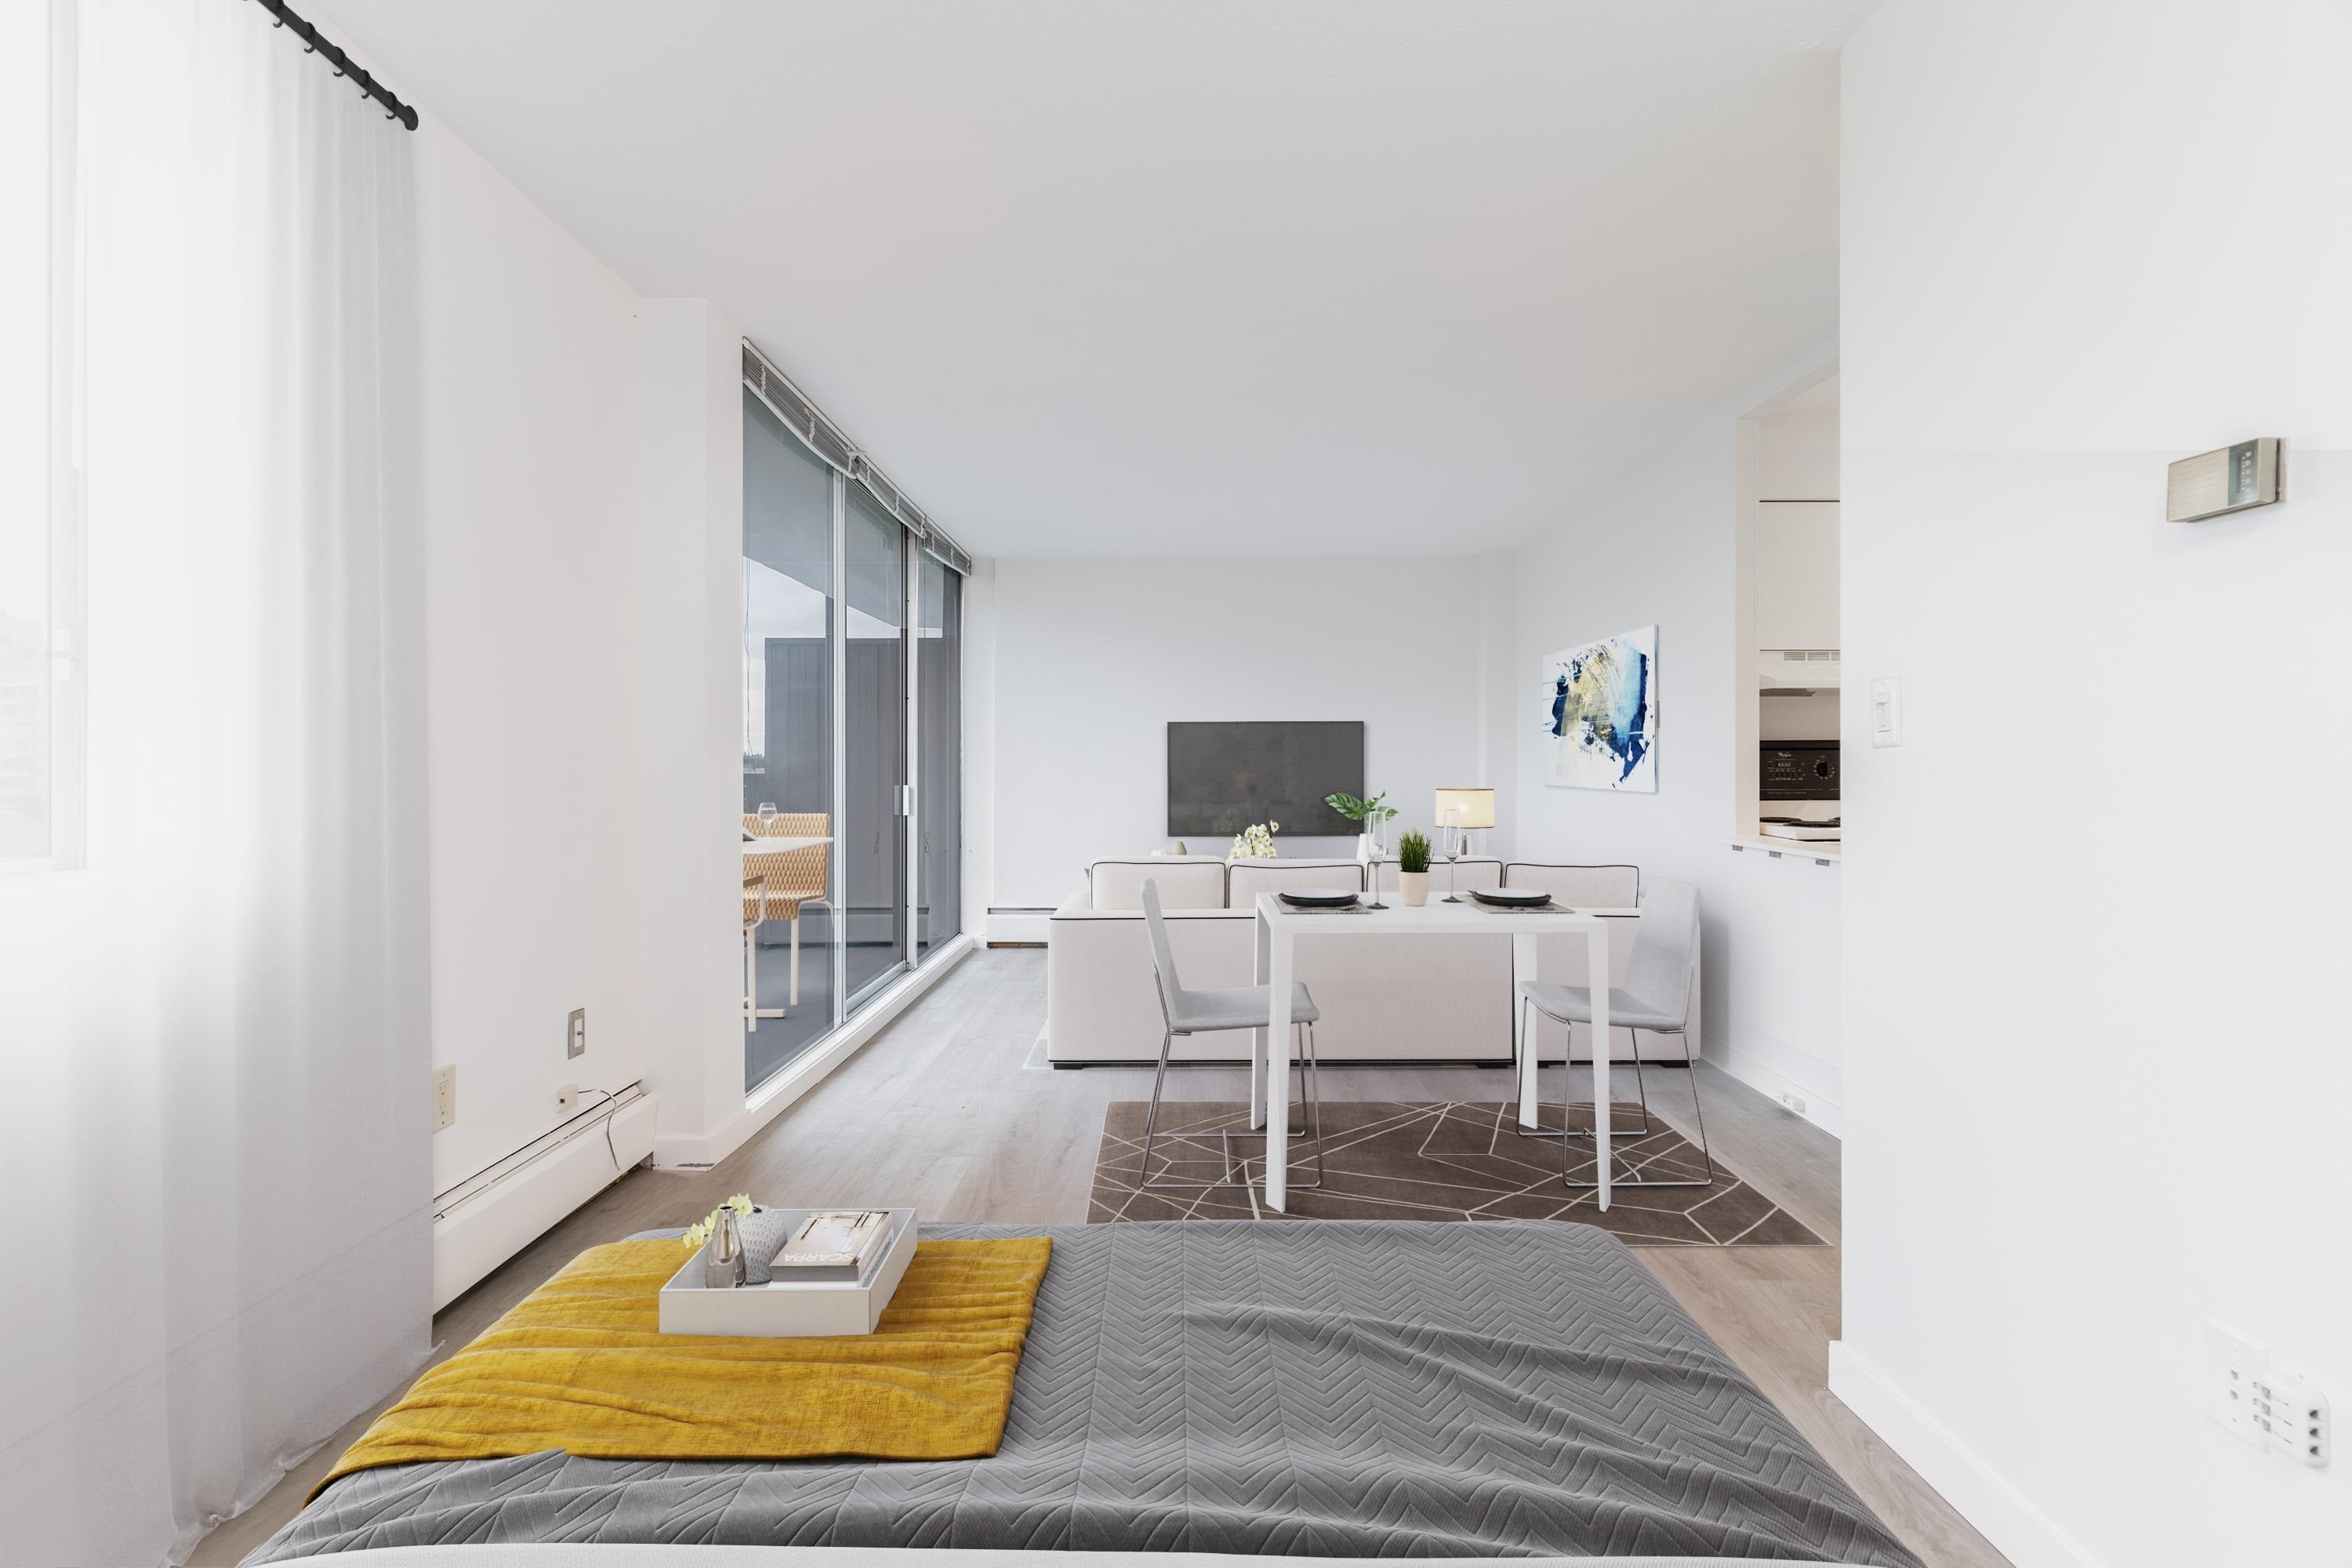 806 1251 CARDERO STREET - West End VW Apartment/Condo for sale, 1 Bedroom (R2625738) - #8